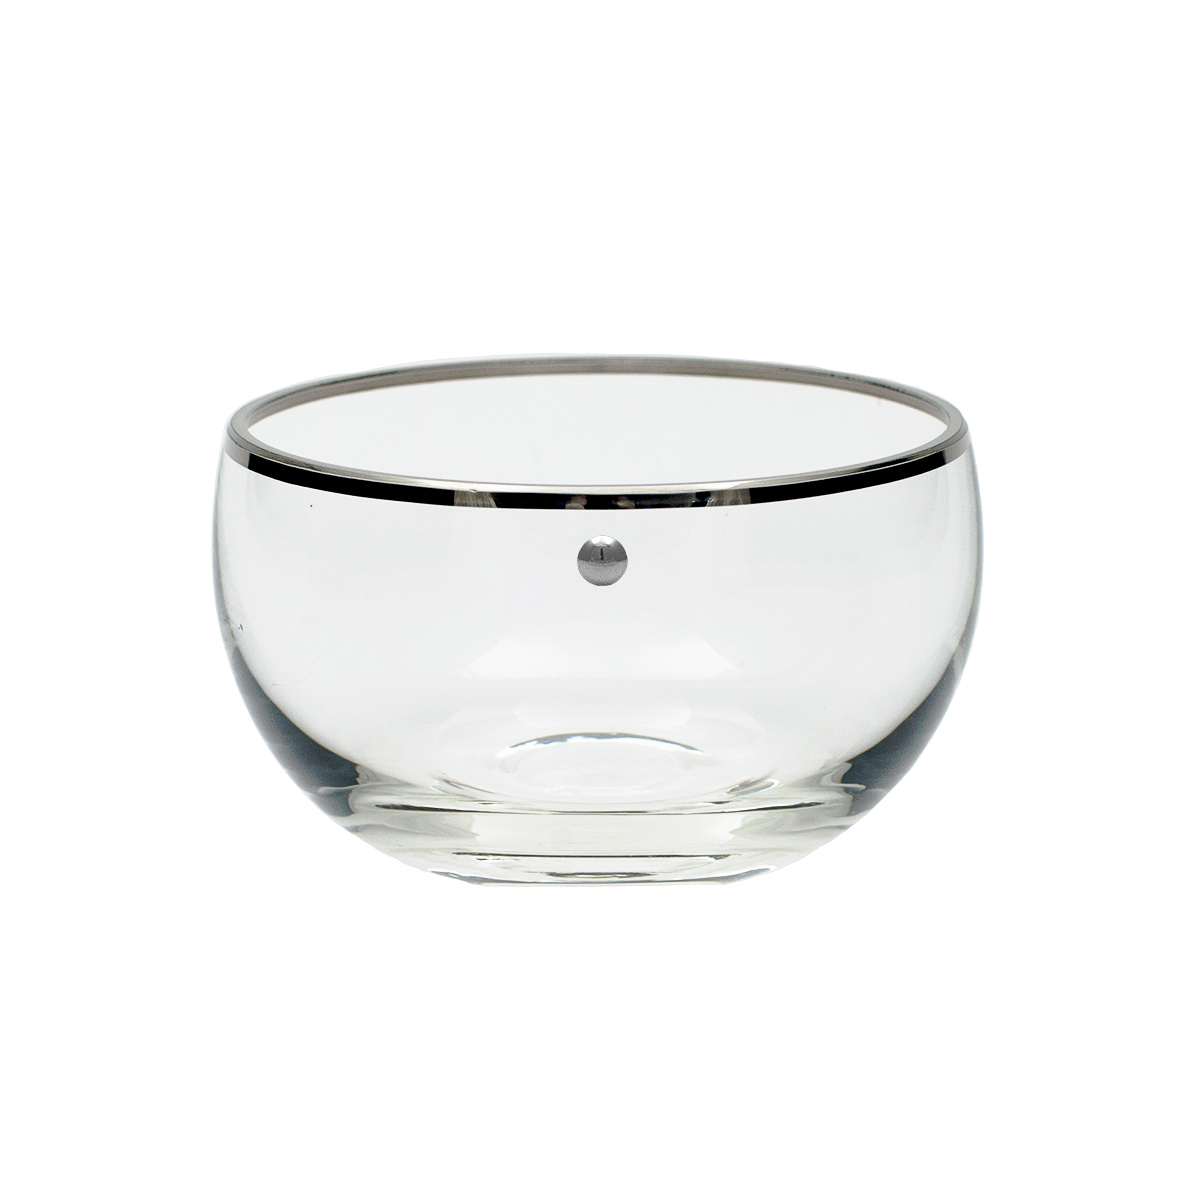 jai-cup-design-crystal-giberto-murano-glass-platinum-venice-luxury-stone